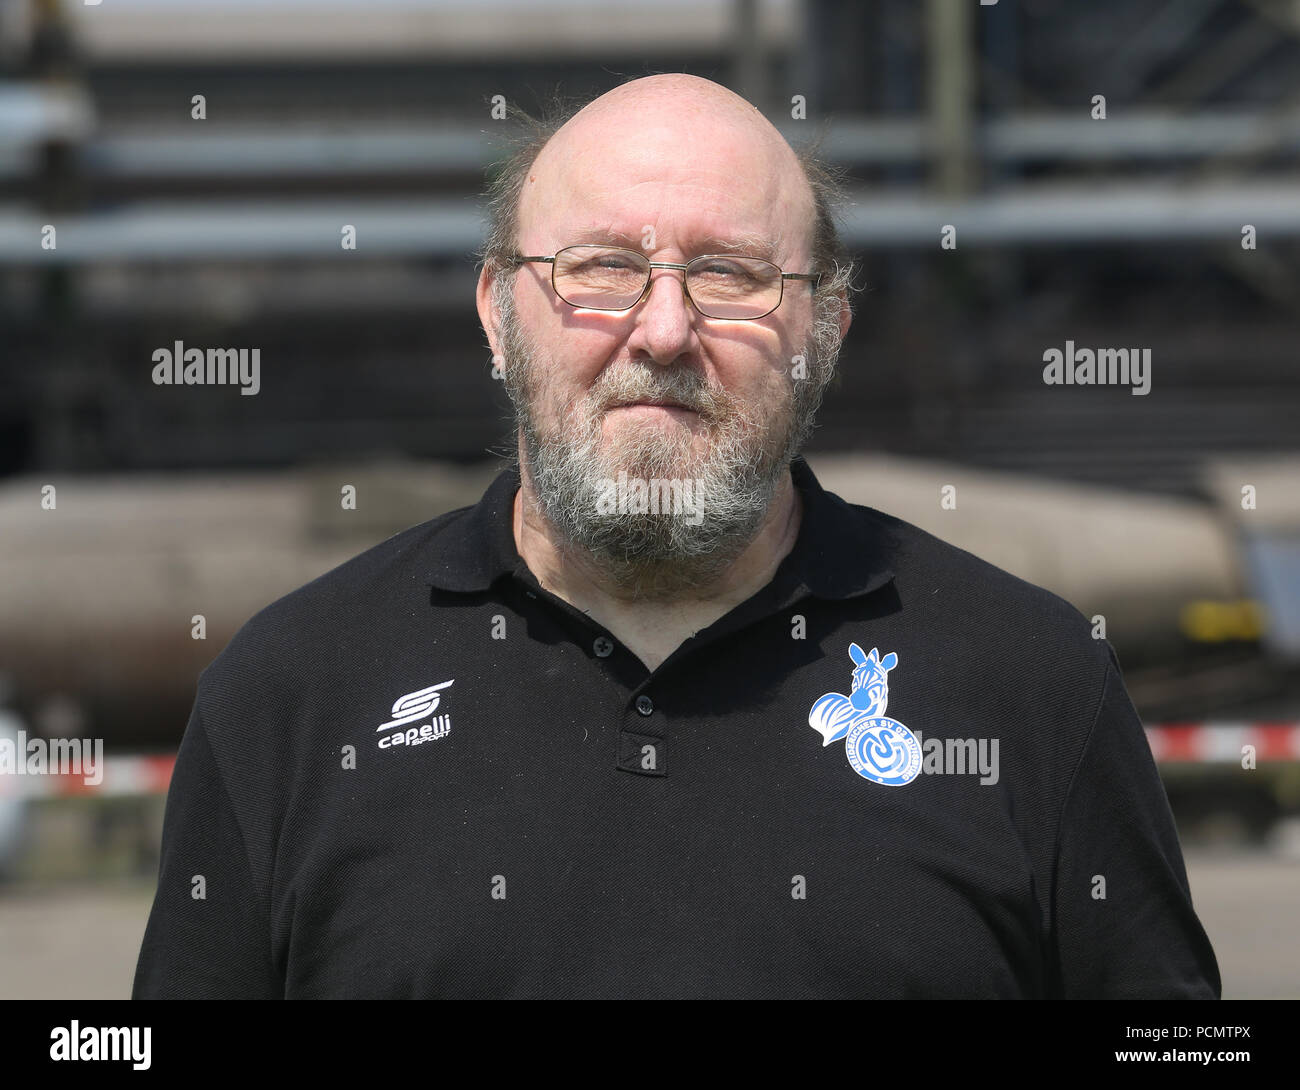 2nd German Bundesliga, official photocall MSV duisburg for season 2018/19 in Duisburg, Germany: kitman Peter Lindner ; Photo: Roland Weihrauch/dpa | usage worldwide - Stock Image